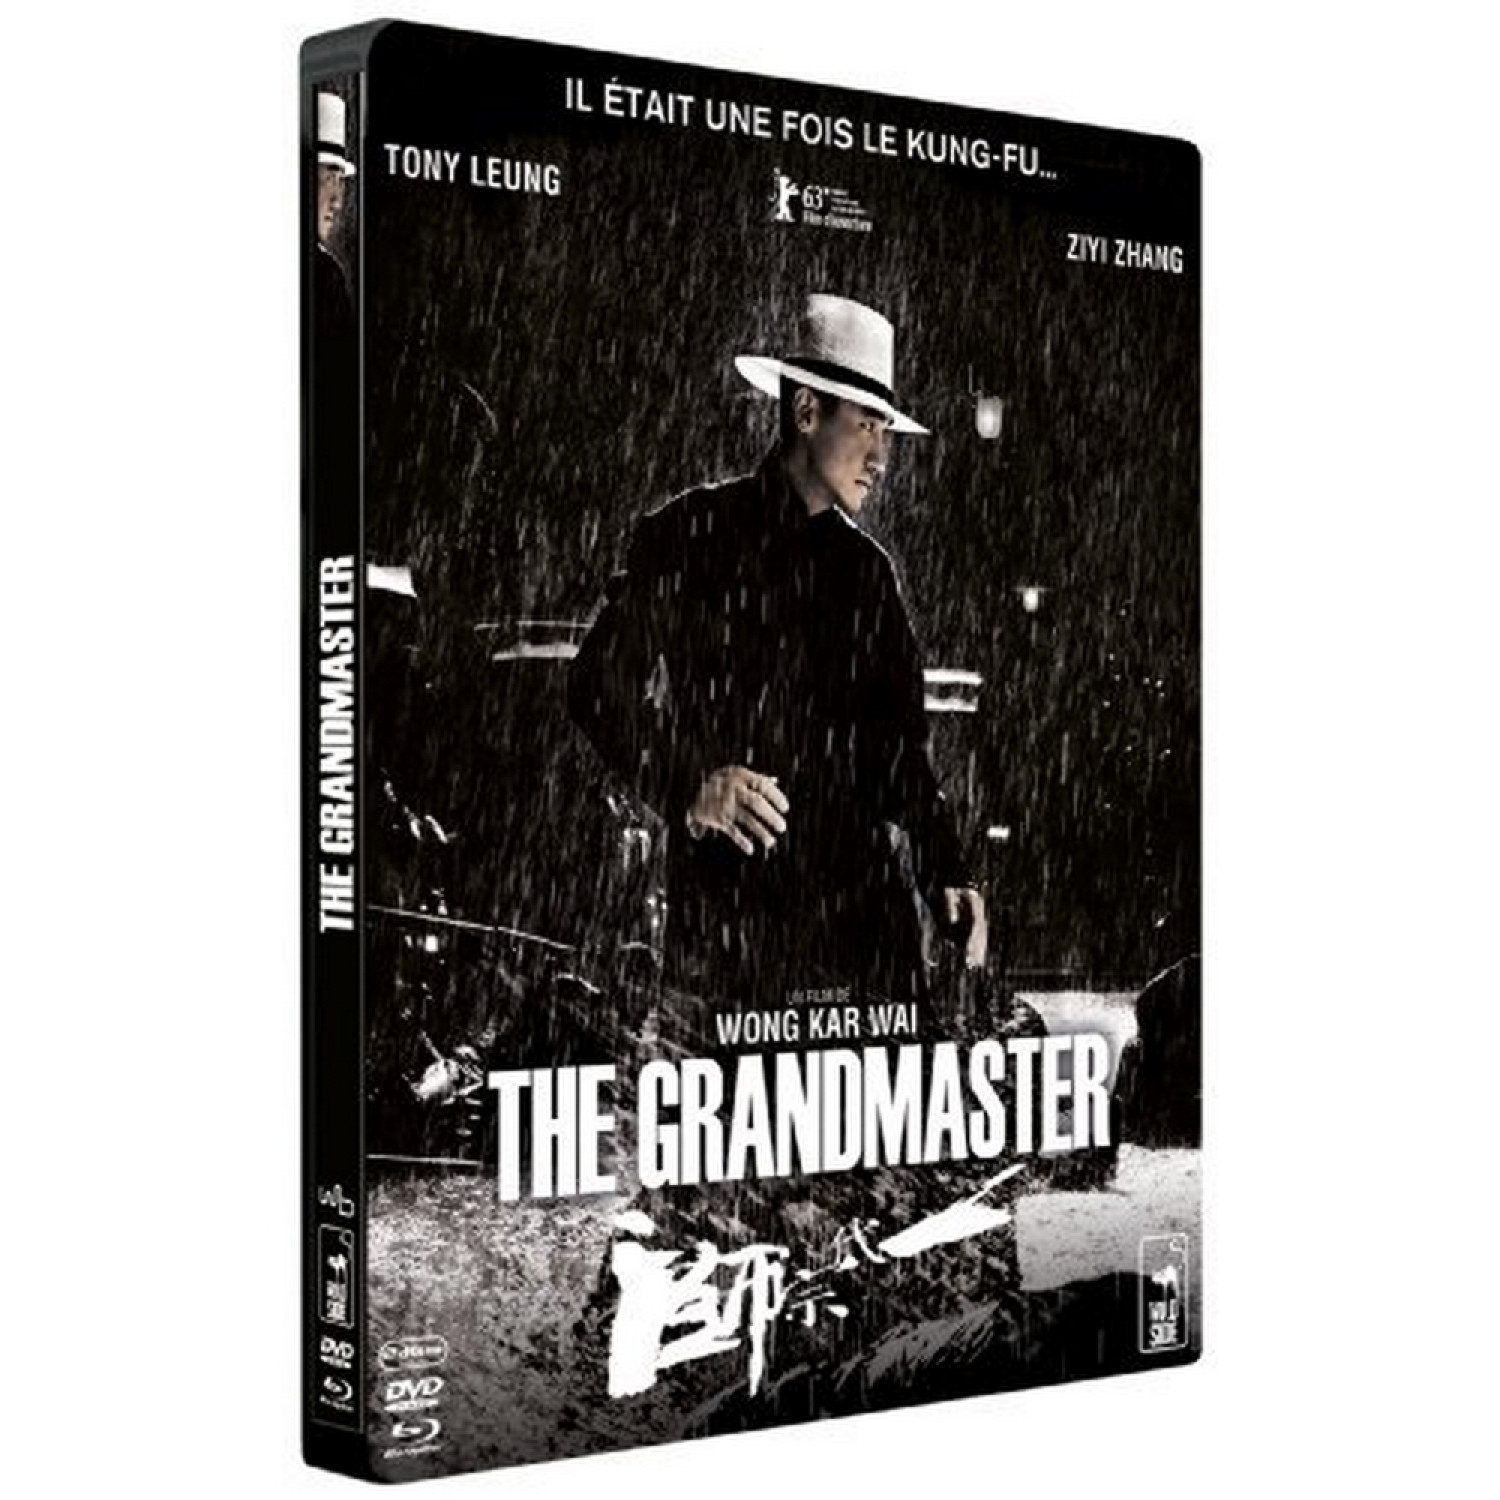 The Grandmaster - Edition Limitee Steelbook Dvd + Blu-ray + 1 Scene Inedite En 3d Active [blu-ray]